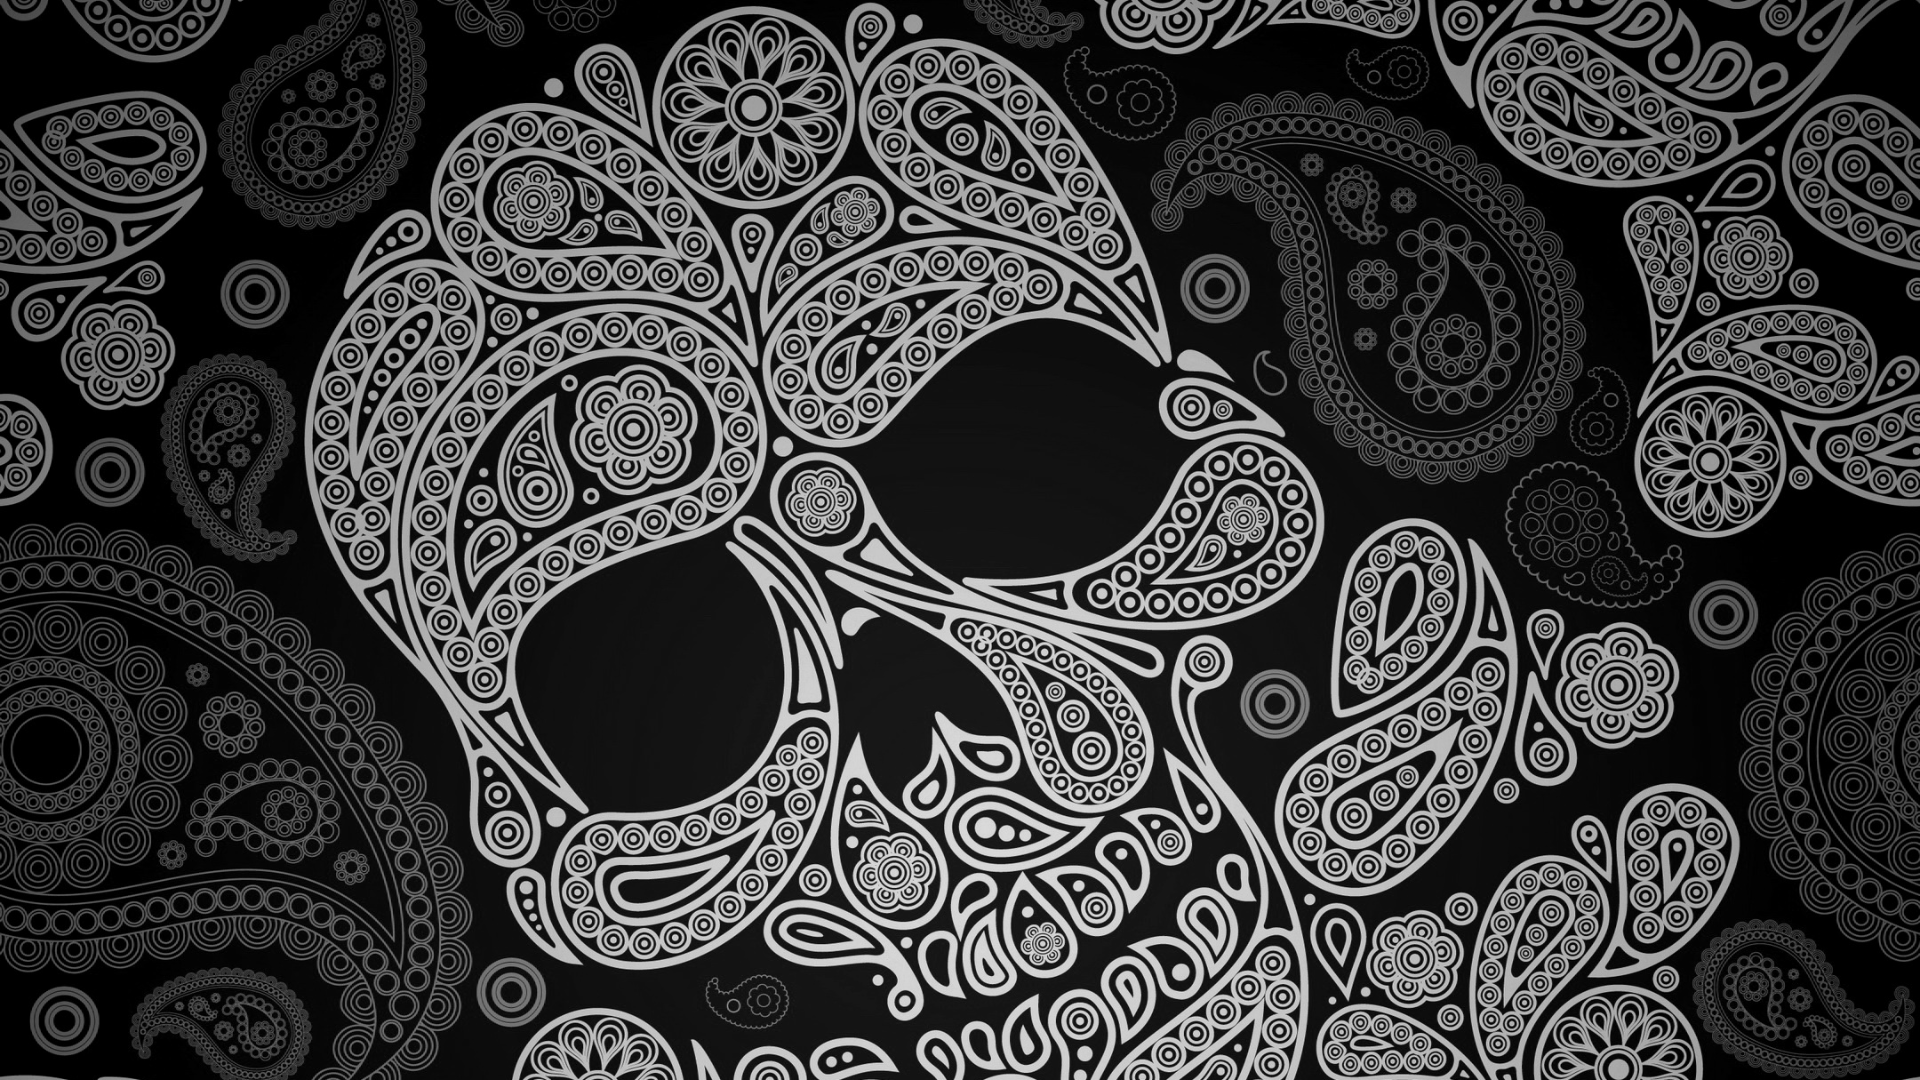 Sugar Skull 4 Best Wallpaper 7088 Full HD Wallpapers | Cool .